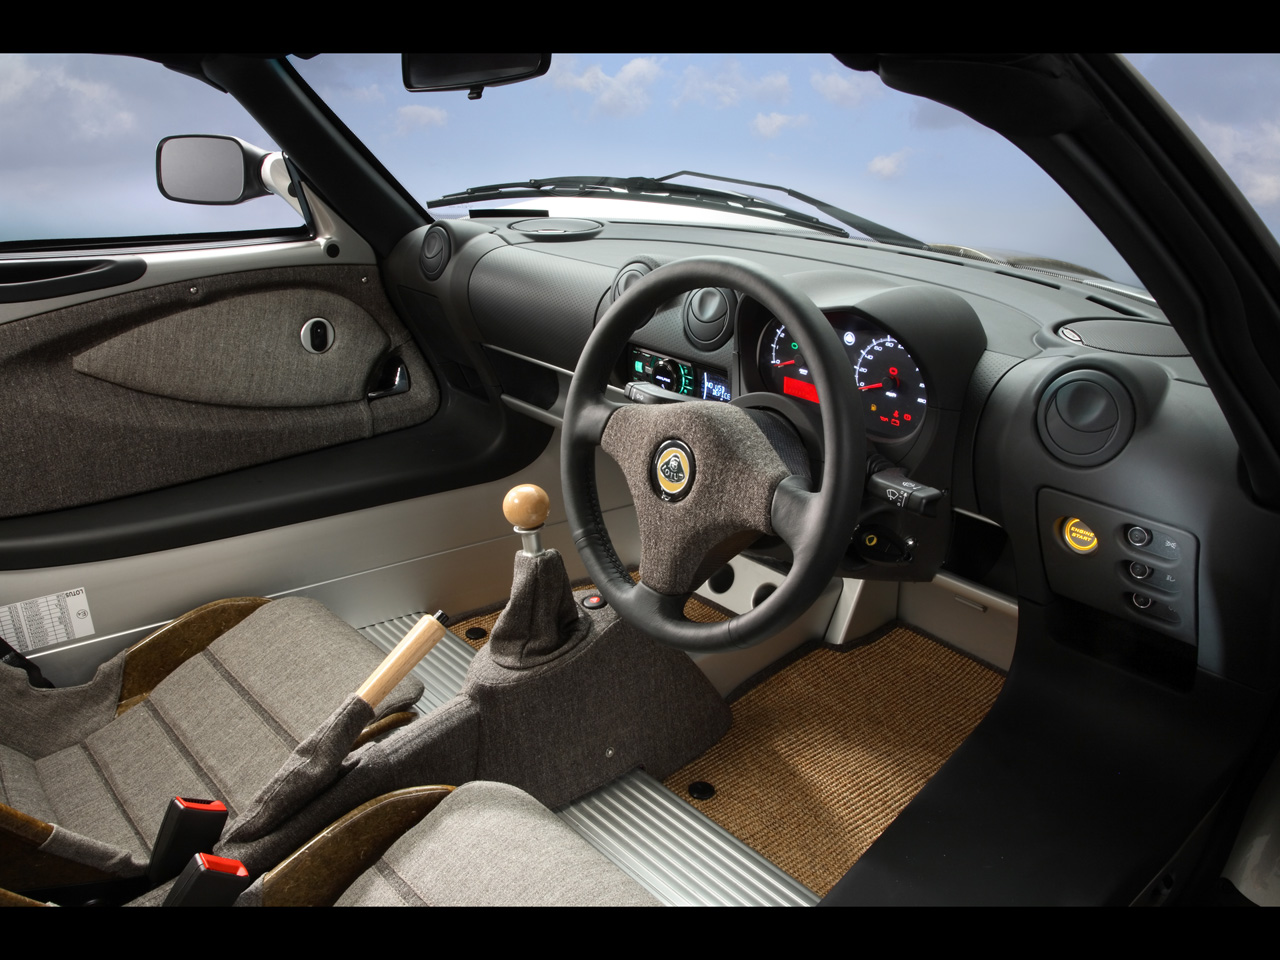 2008-Lotus-Eco-Elise-Interior-1280x960.jpg